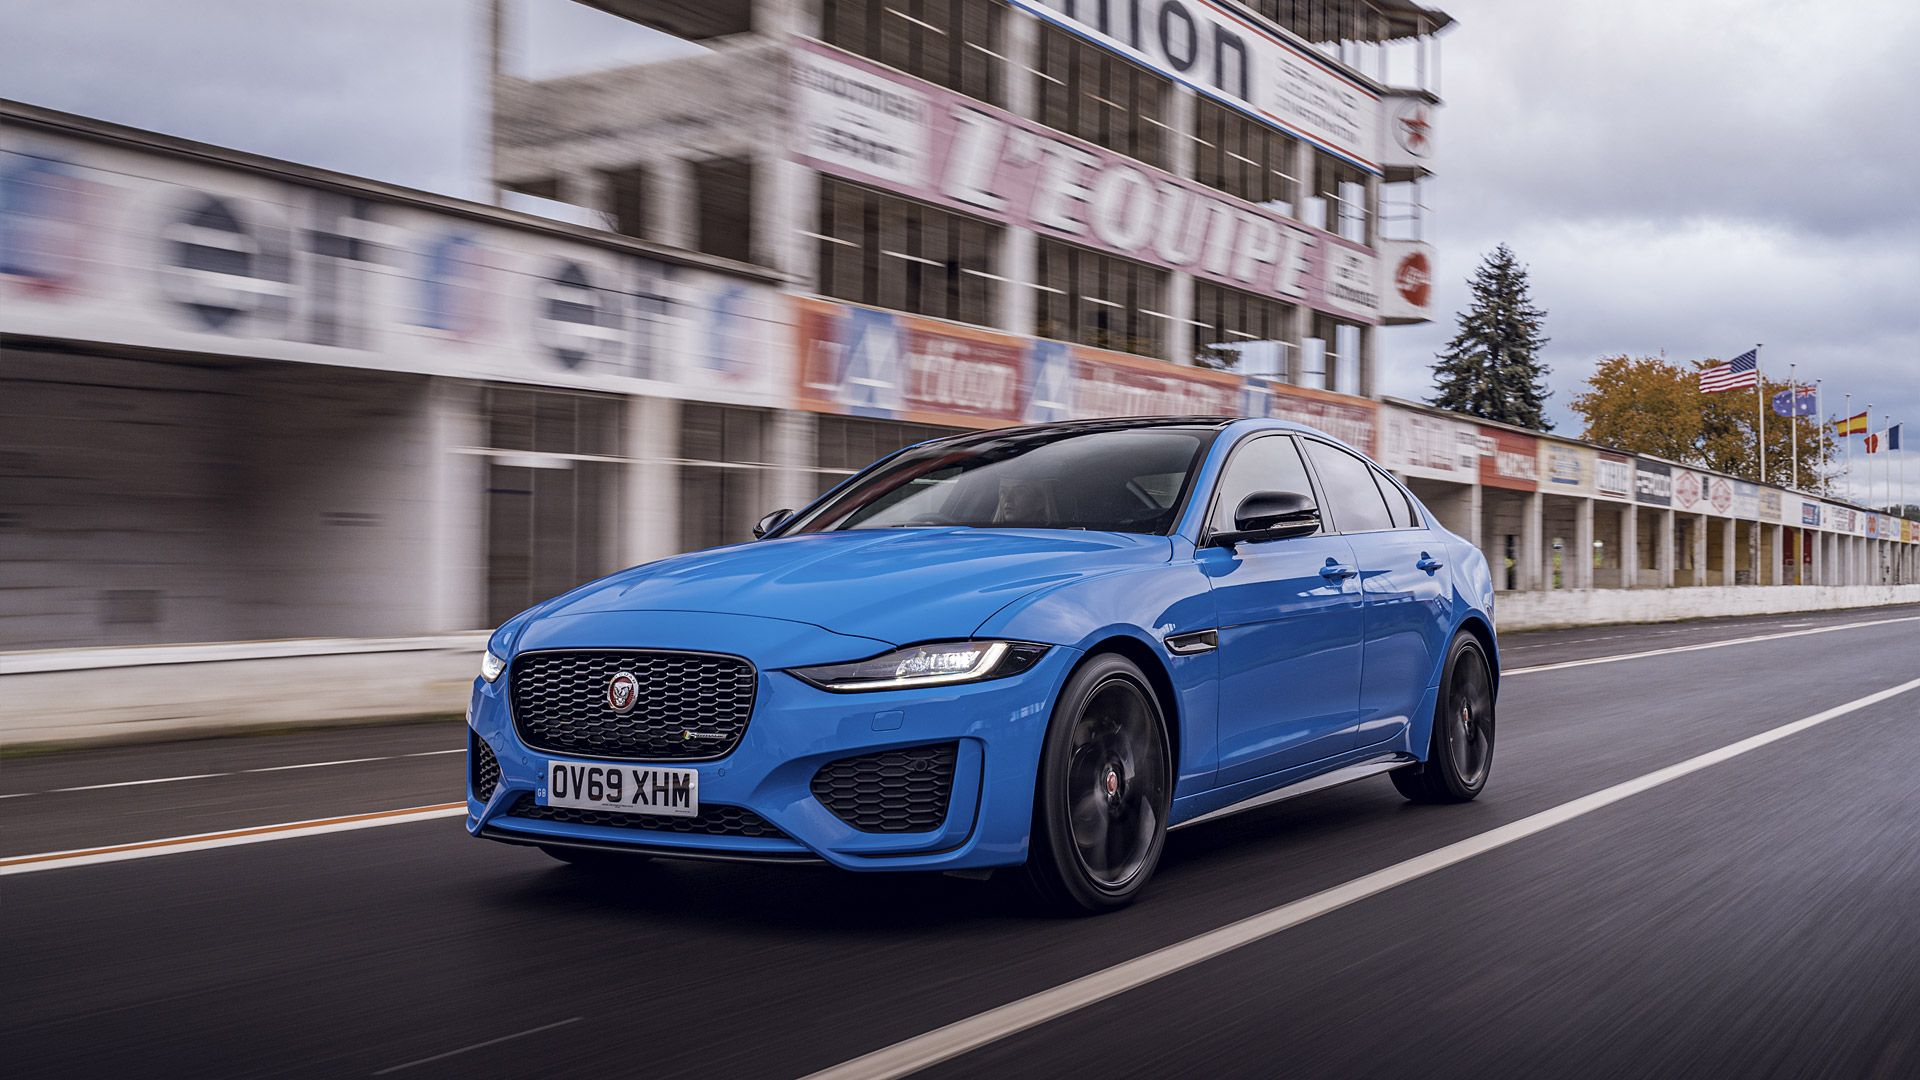 2020 Jaguar Xe Reims Edition Jaguar Xe Jaguar Reims